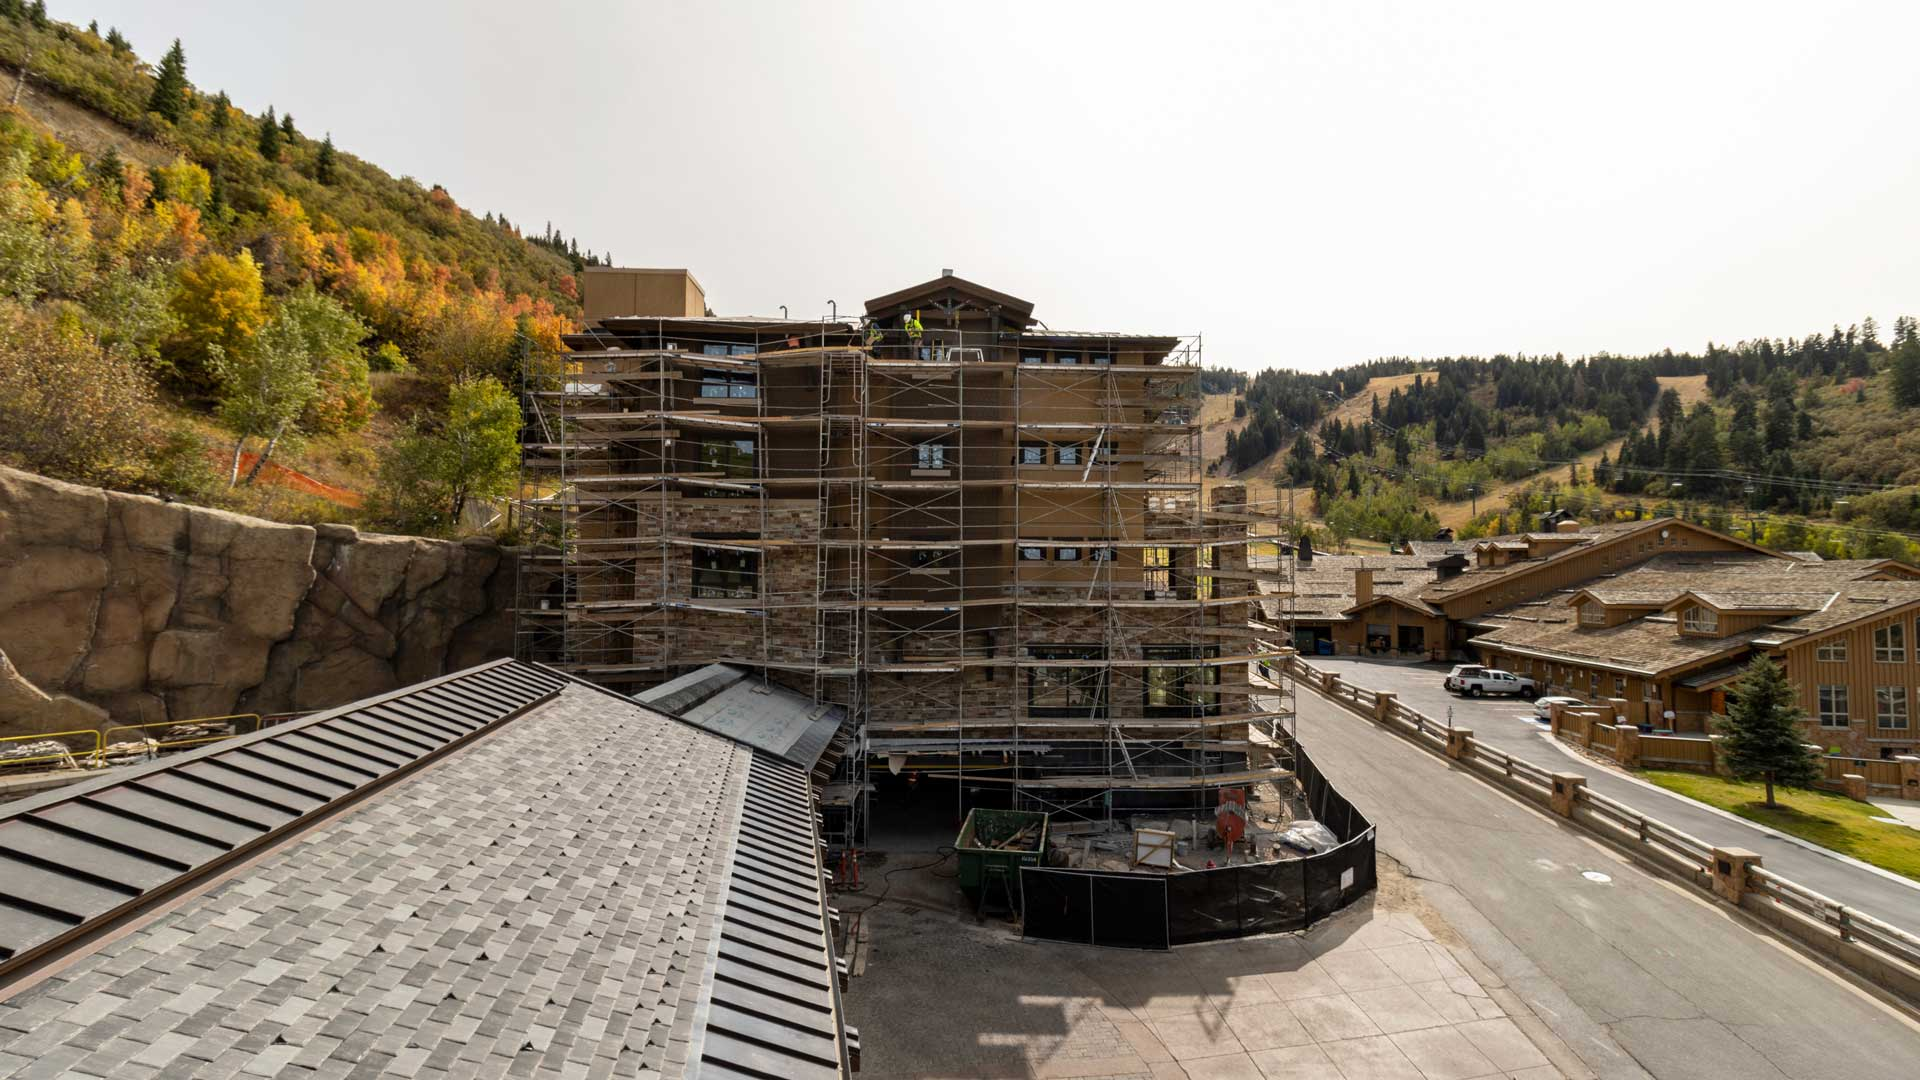 Construction Progress, The Residences at The St. Regis | Snow Park, September 14, 2020